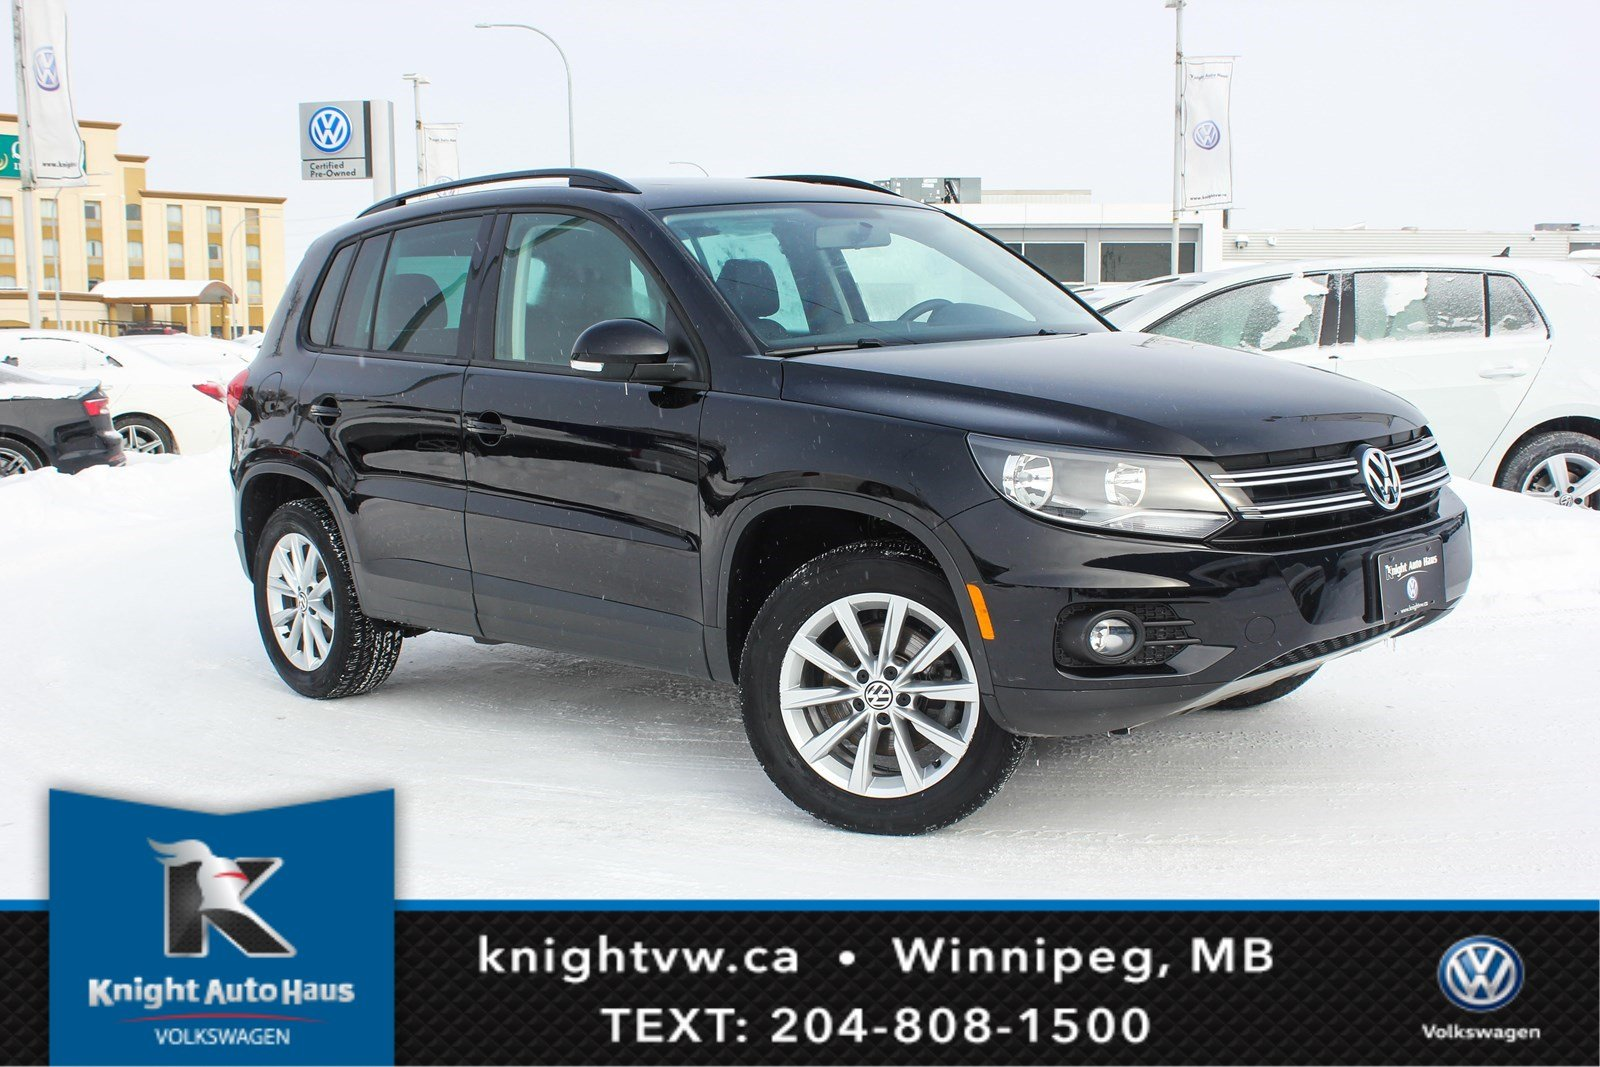 Certified Pre-Owned 2015 Volkswagen Tiguan Comfortline w/Leather/Sunroof 0.9% Financing Available OAC.